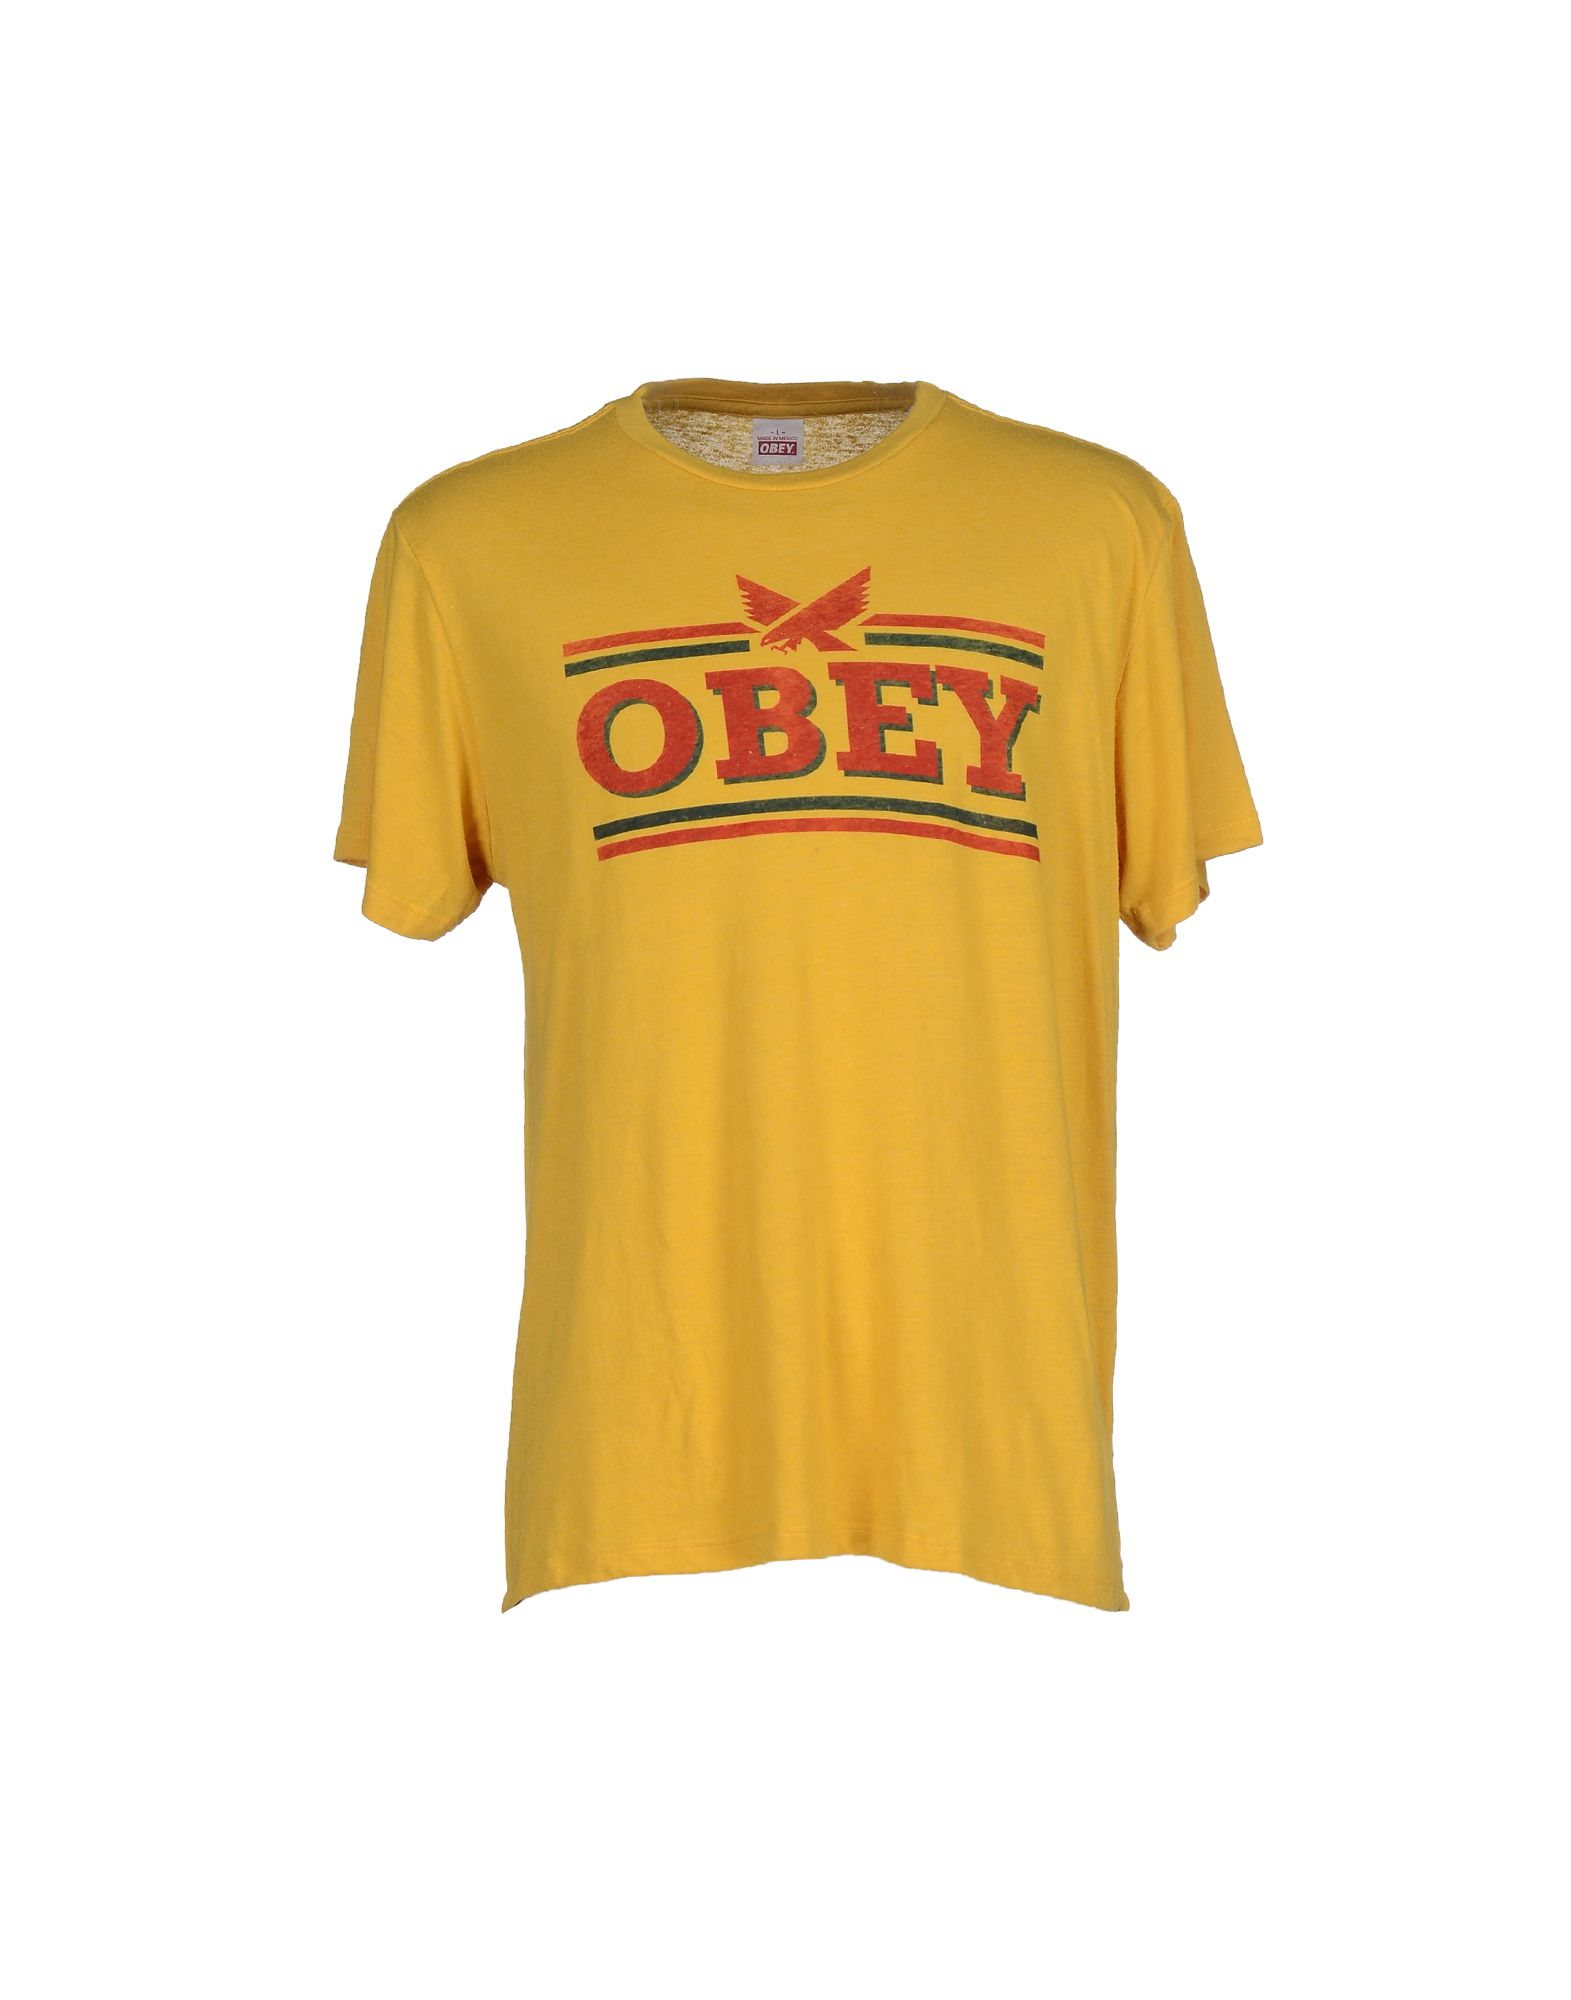 obey t shirt in yellow for men lyst. Black Bedroom Furniture Sets. Home Design Ideas